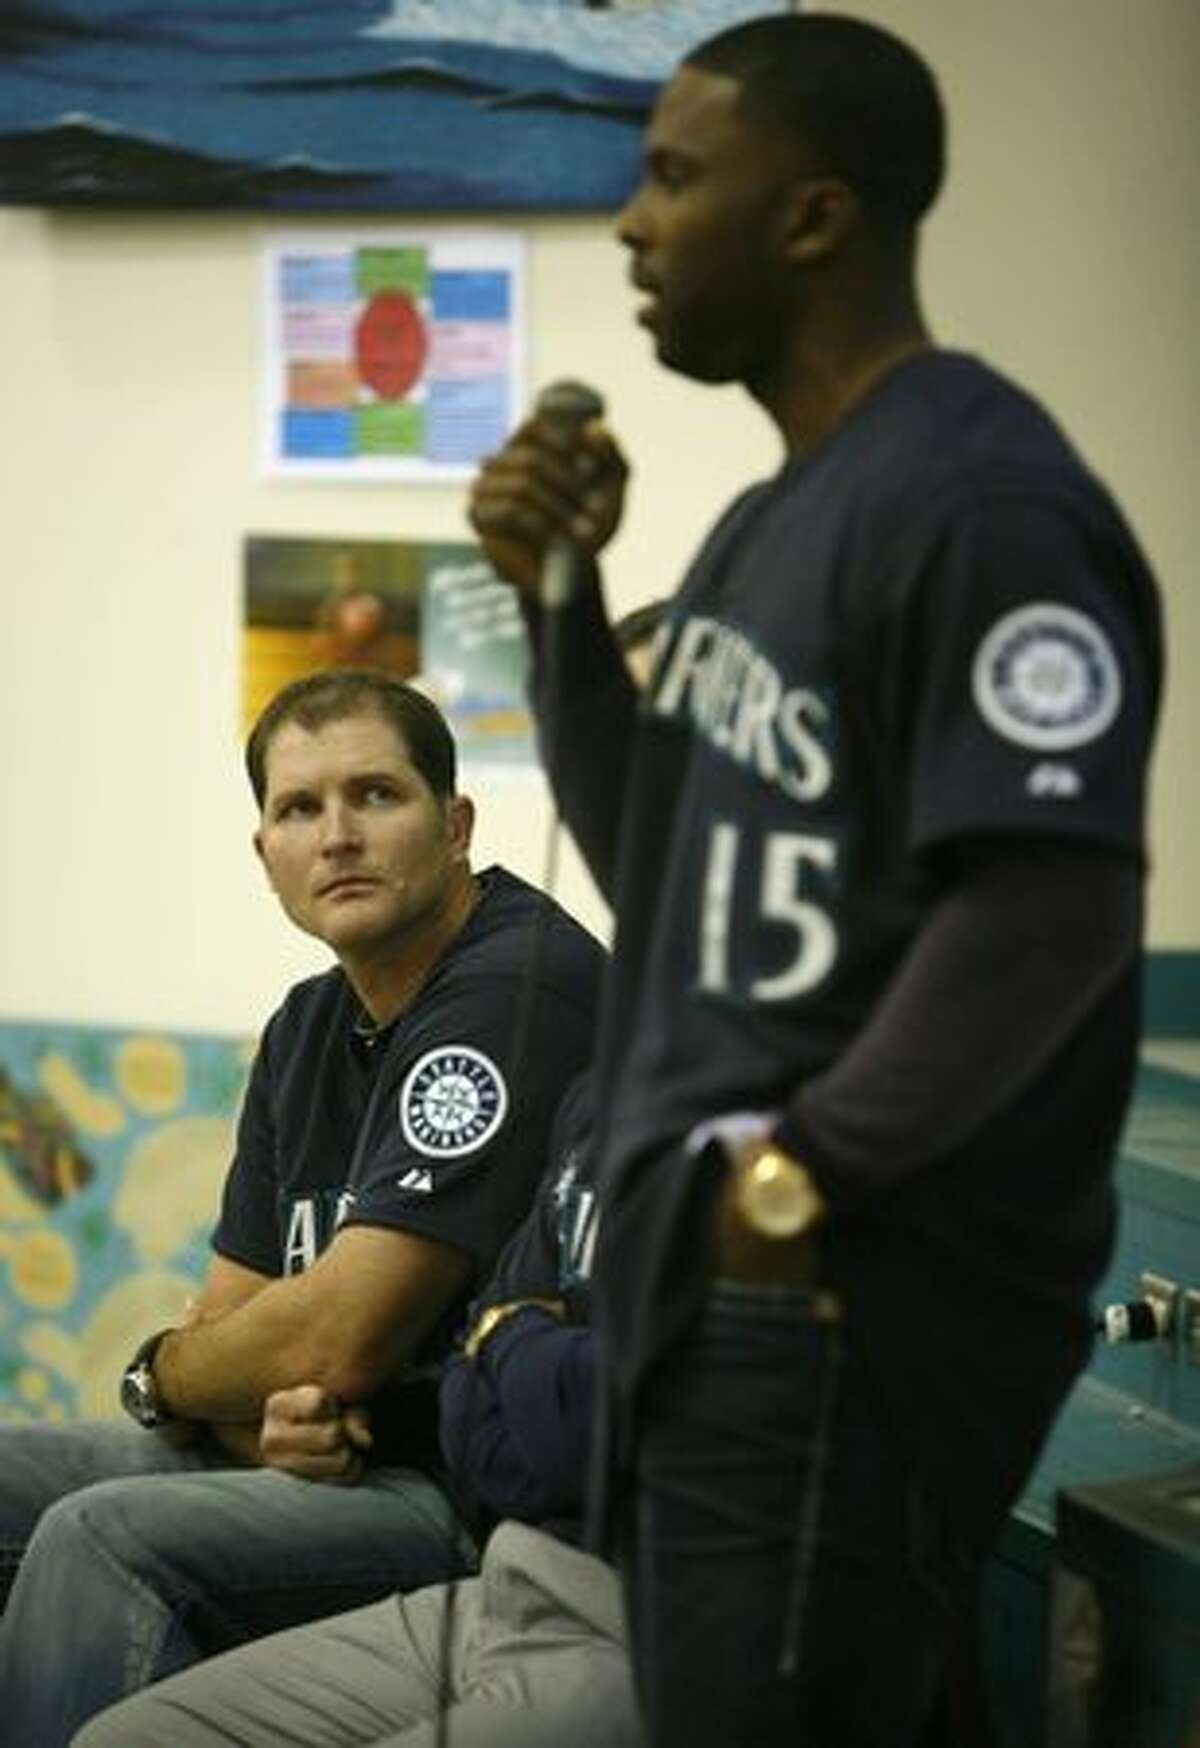 Seattle Mariners' player Mike Sweeney listens as teammate Milton Bradley talks to students during a visit by members of the team to Lakeridge Elementary School.